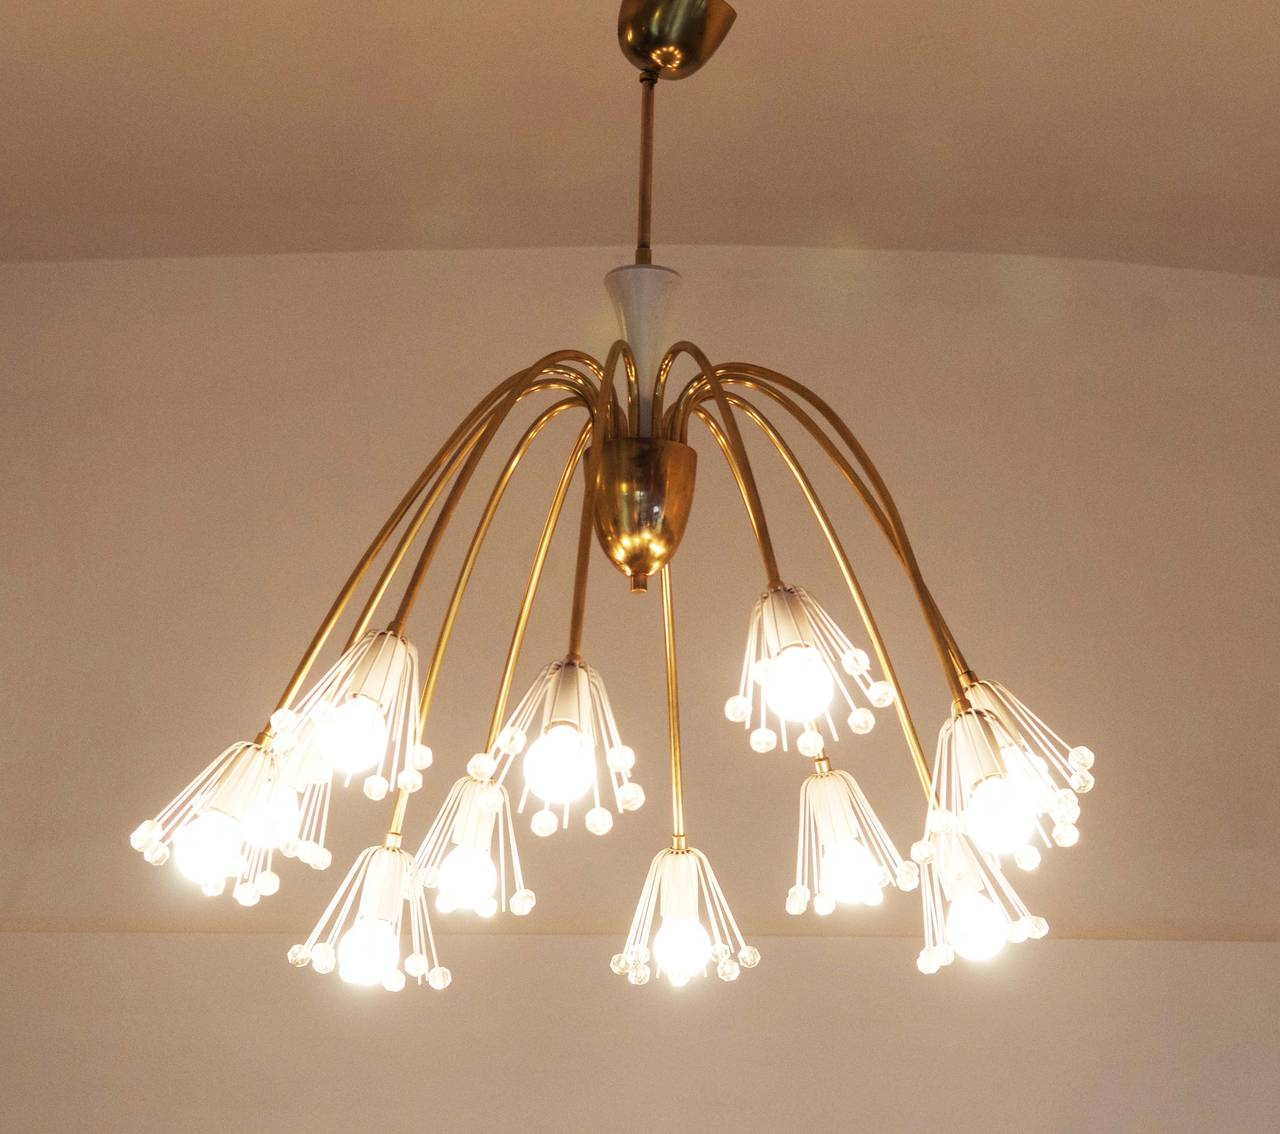 Midcentury Modernist Chandelier by Emil Stejnar for Rupert Nikoll In Excellent Condition For Sale In Vienna, AT